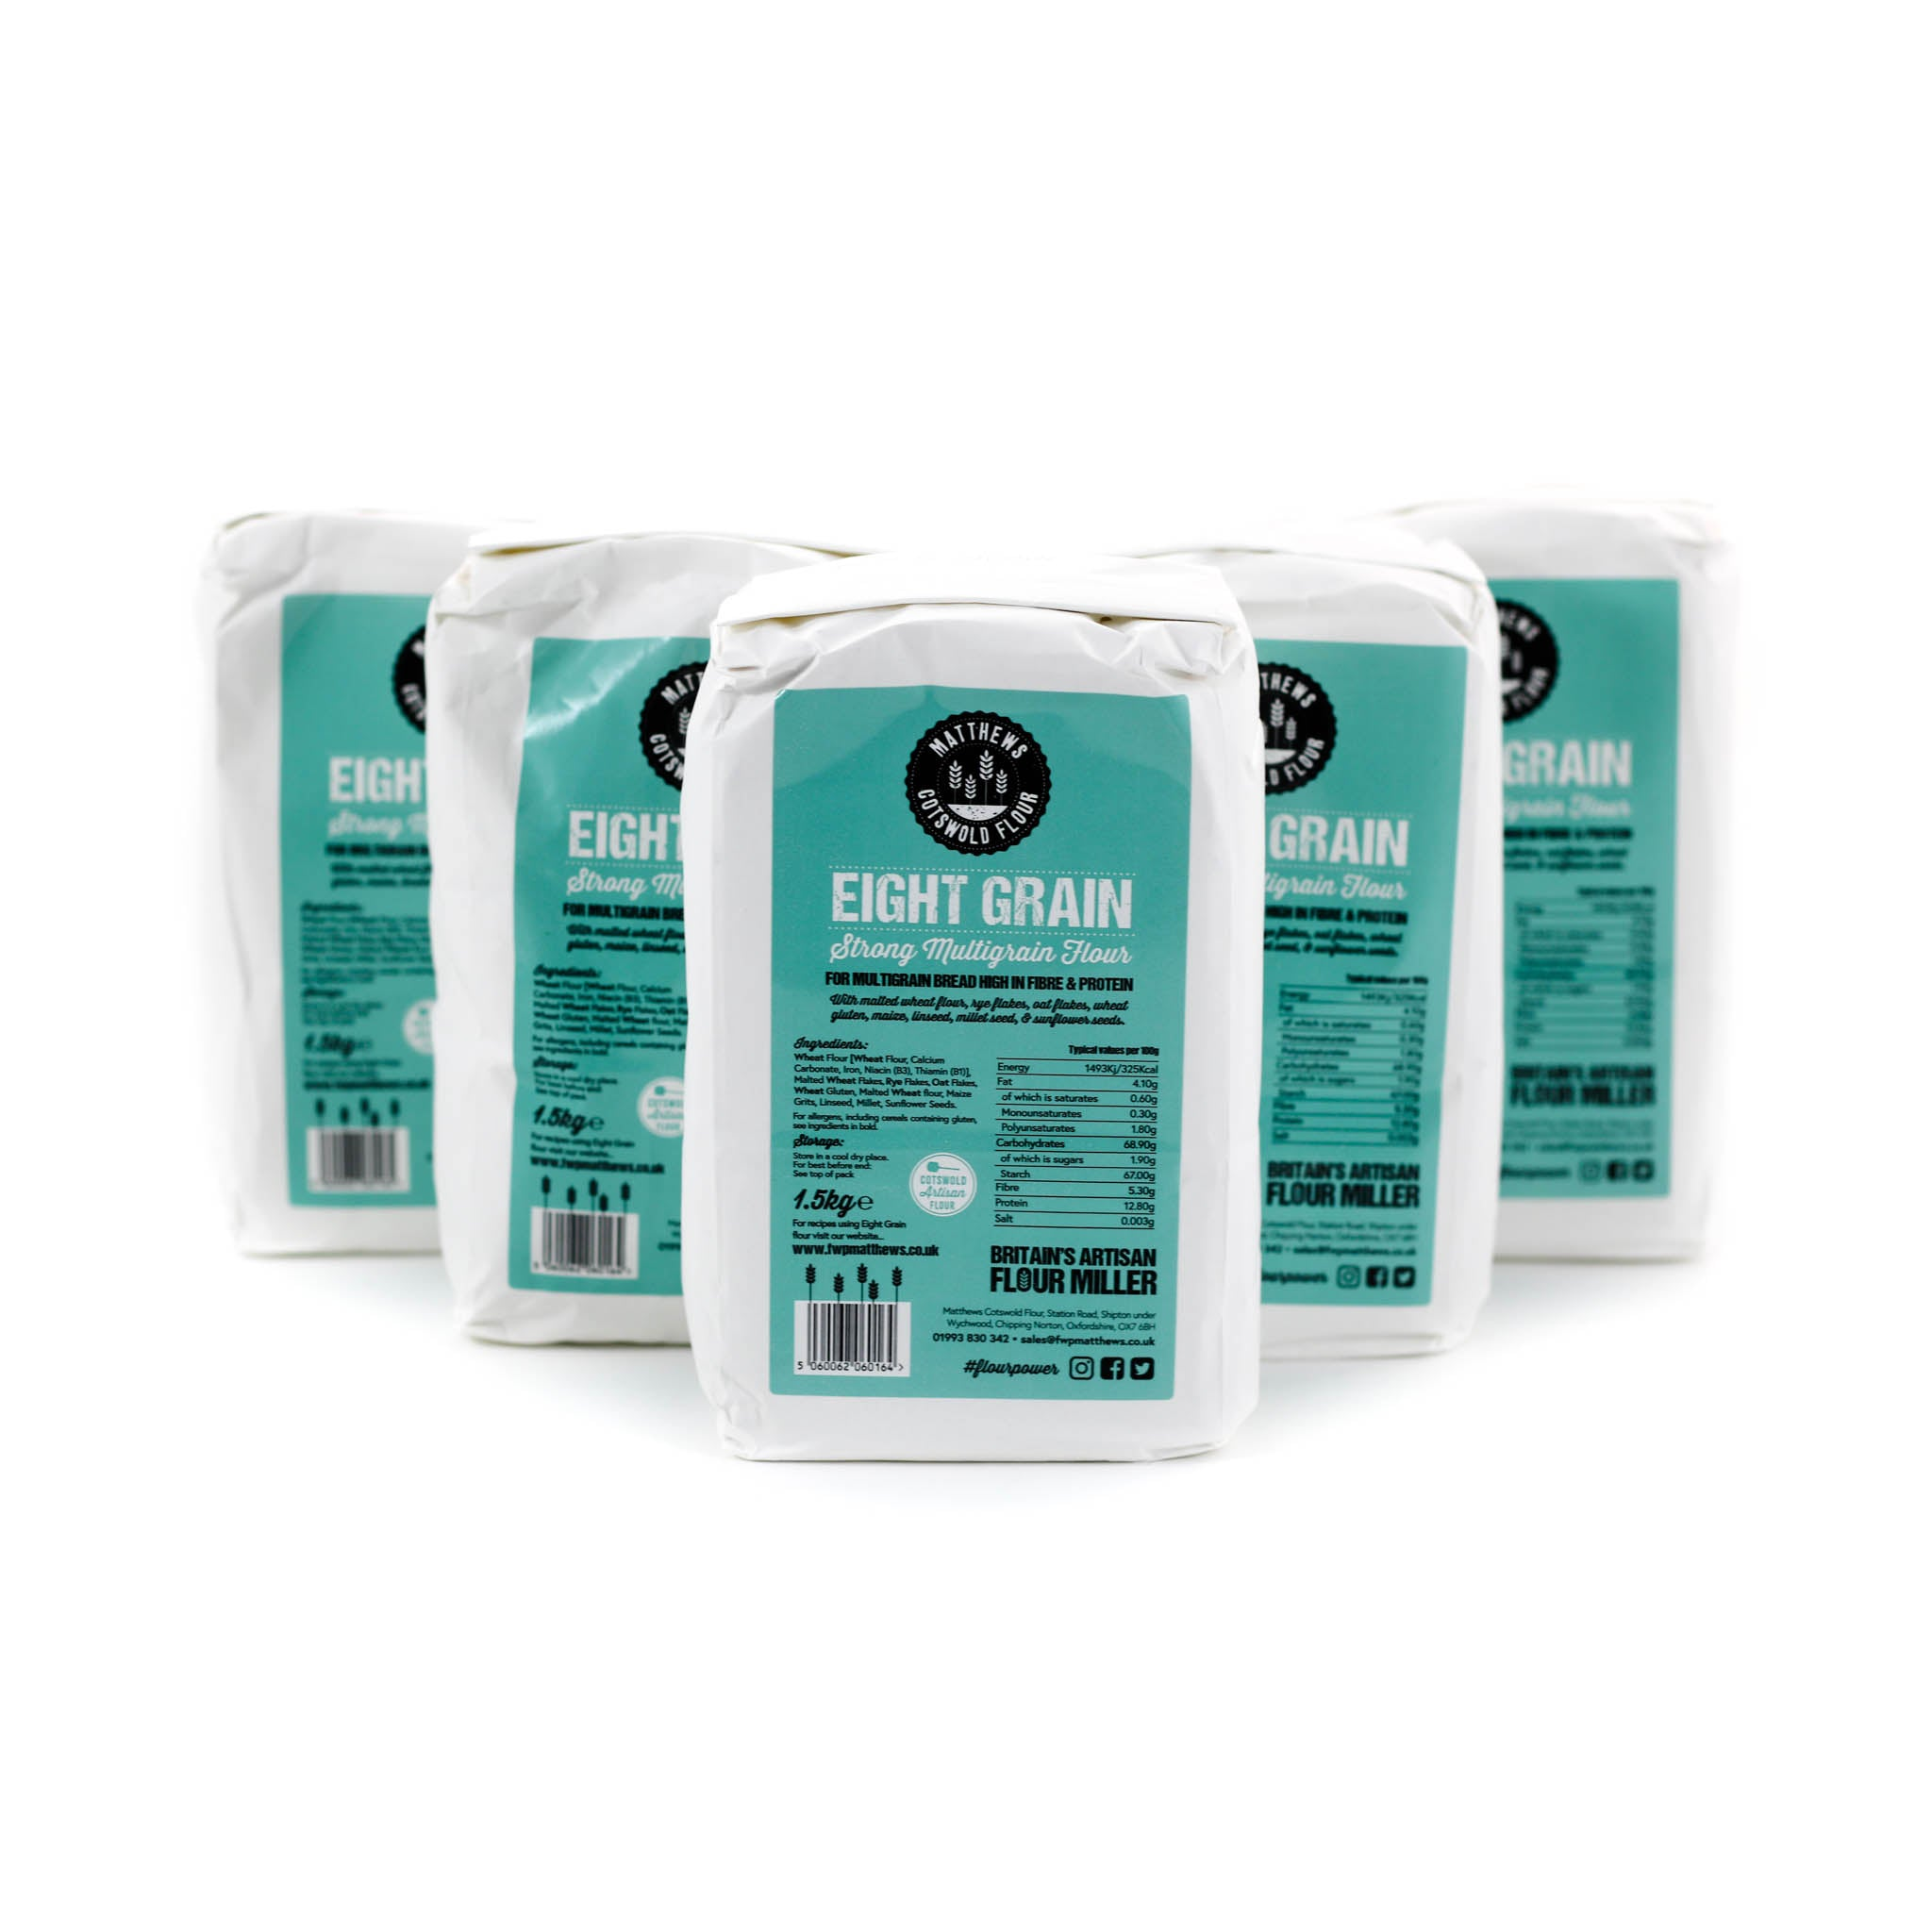 Matthews Cotswold Eight Grain Flour 5x1.5kg